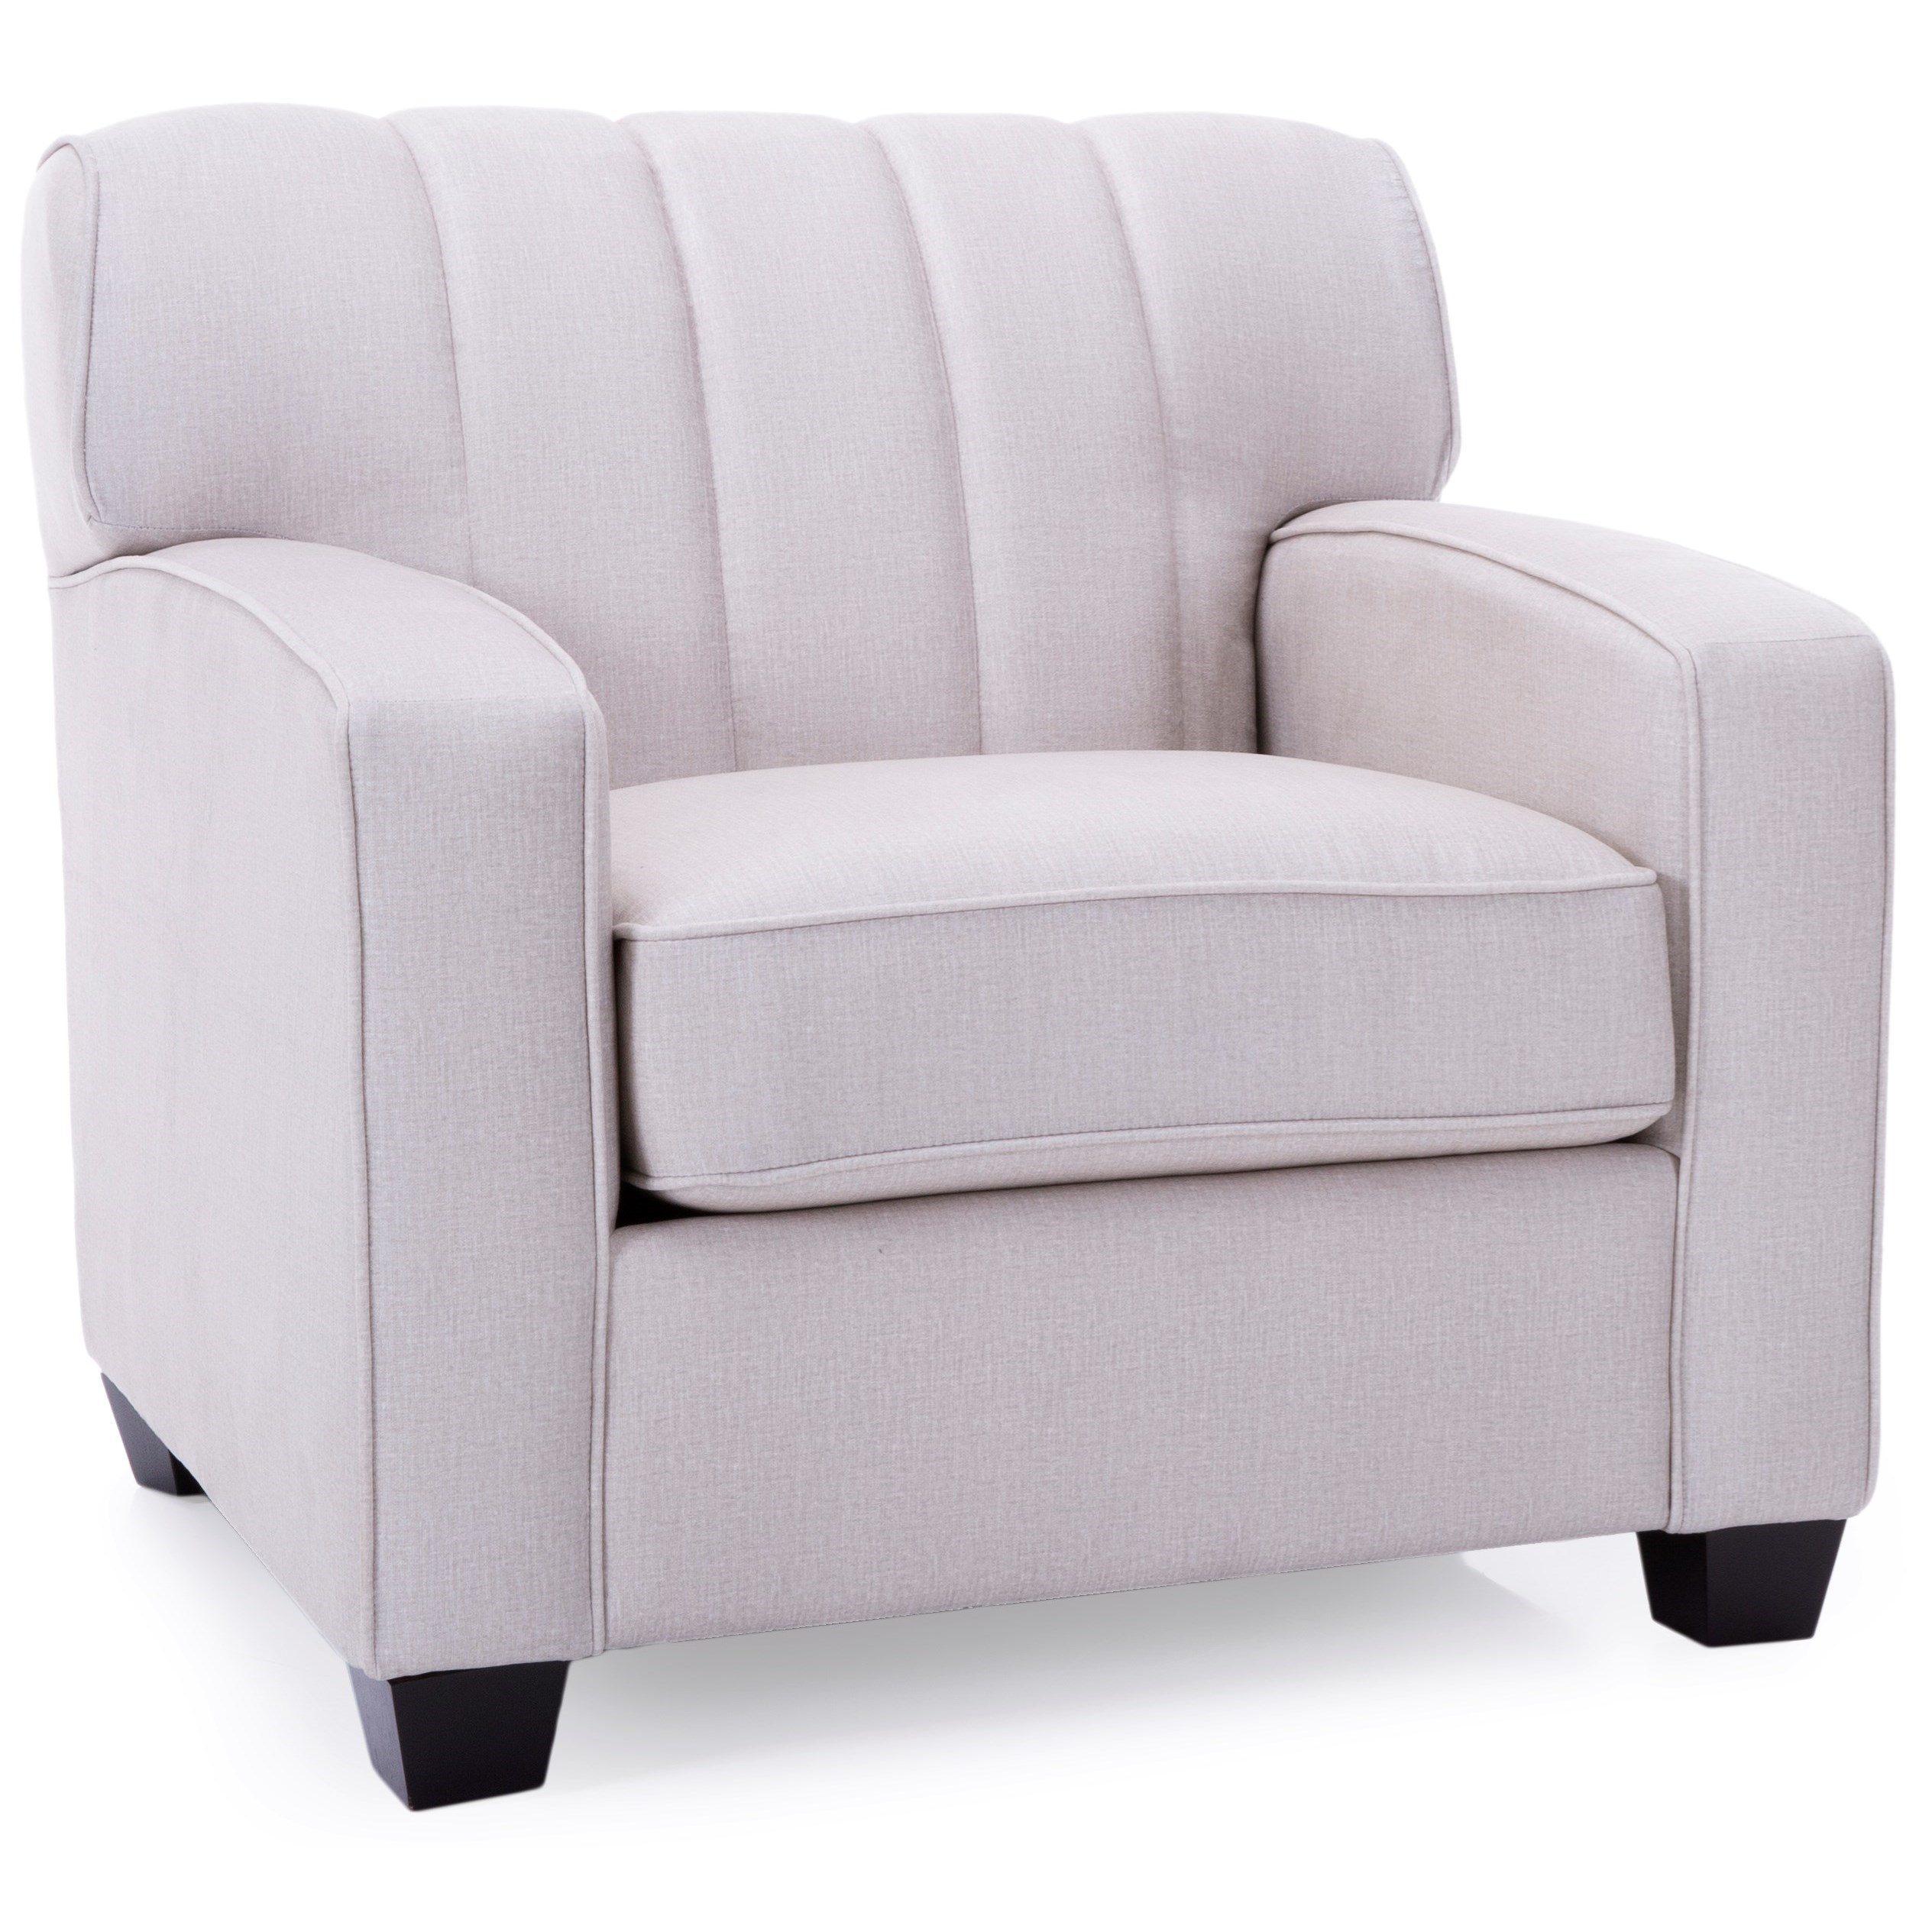 2801 Chair by Decor-Rest at Fine Home Furnishings